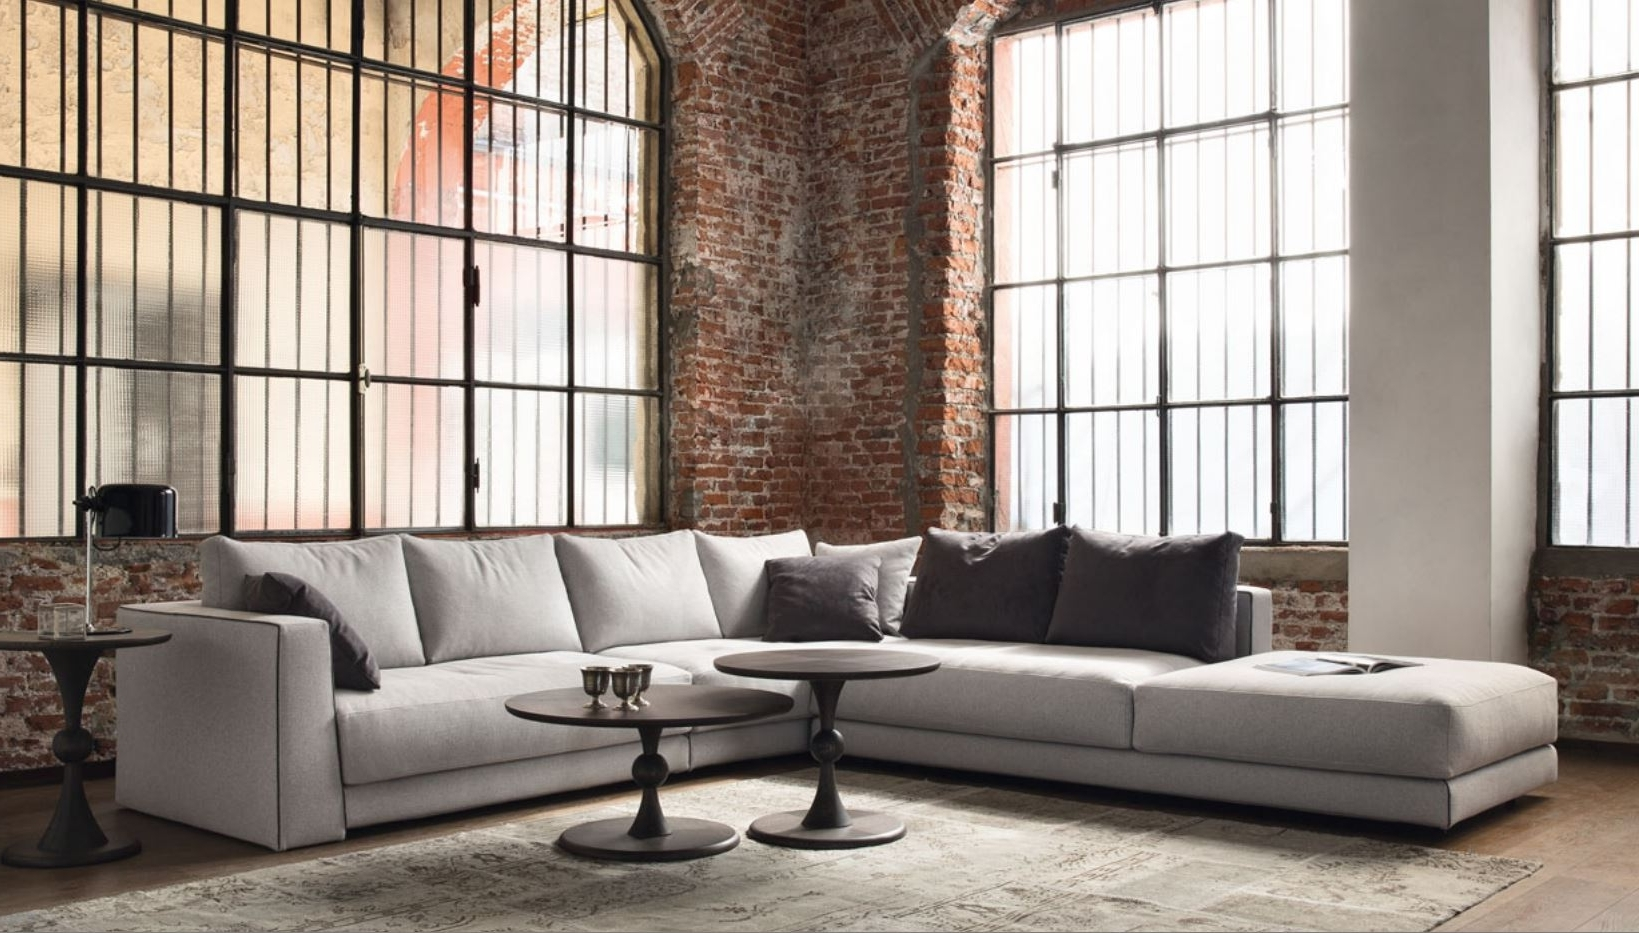 Modern Sofas,modern Furniture,design Sofas – Sectional Modern Sofa For Most Current Wide Sectional Sofas (View 15 of 15)